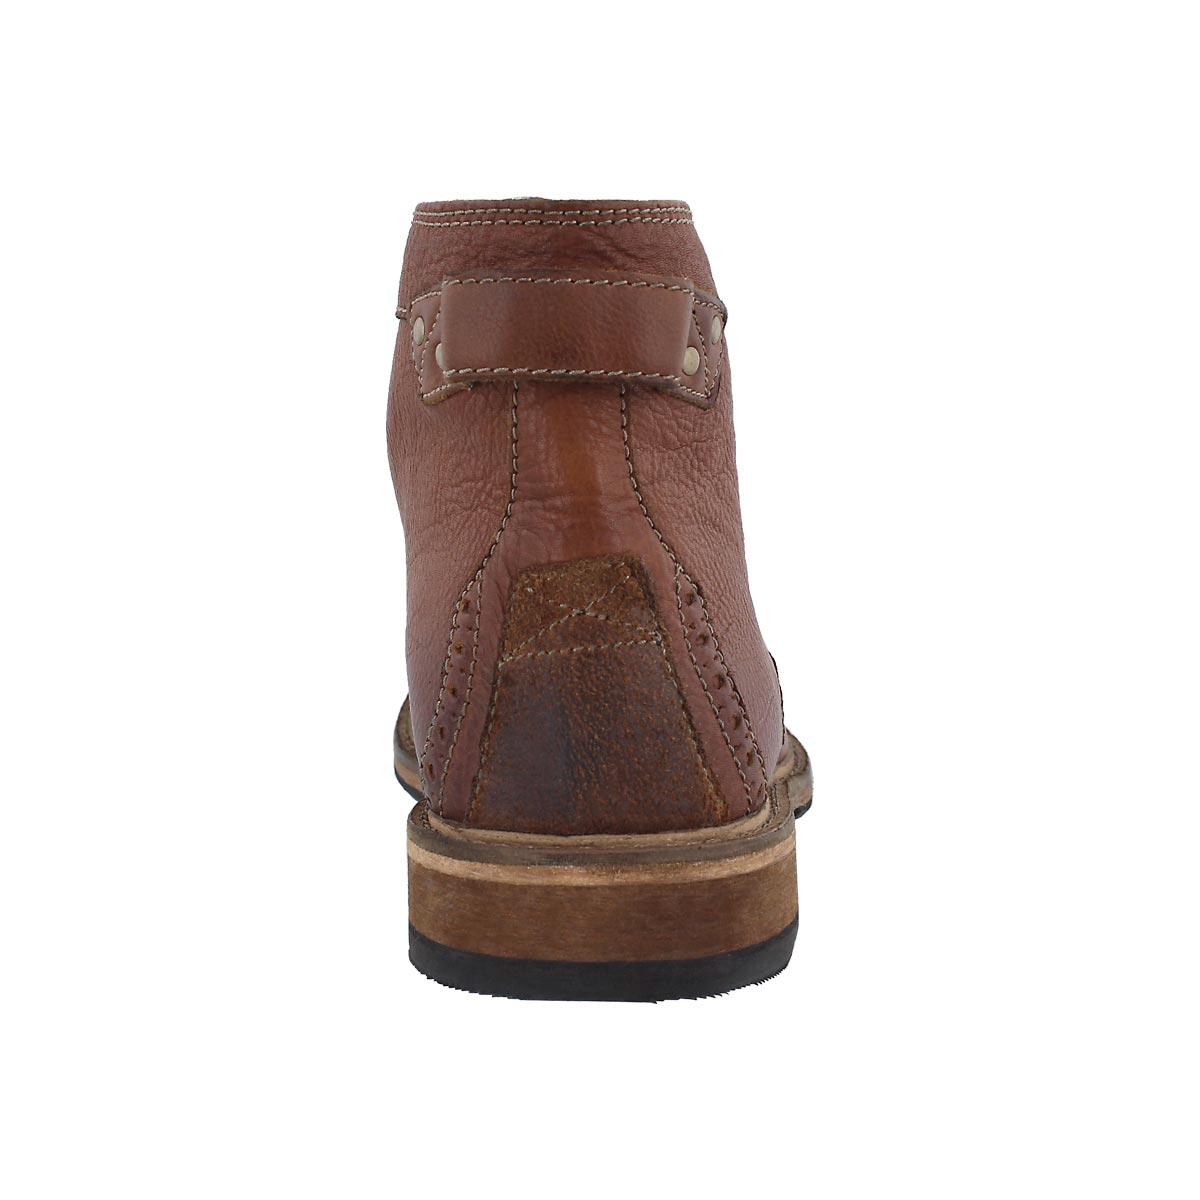 Mns Clarkdale Bud tan laceup ankle boot